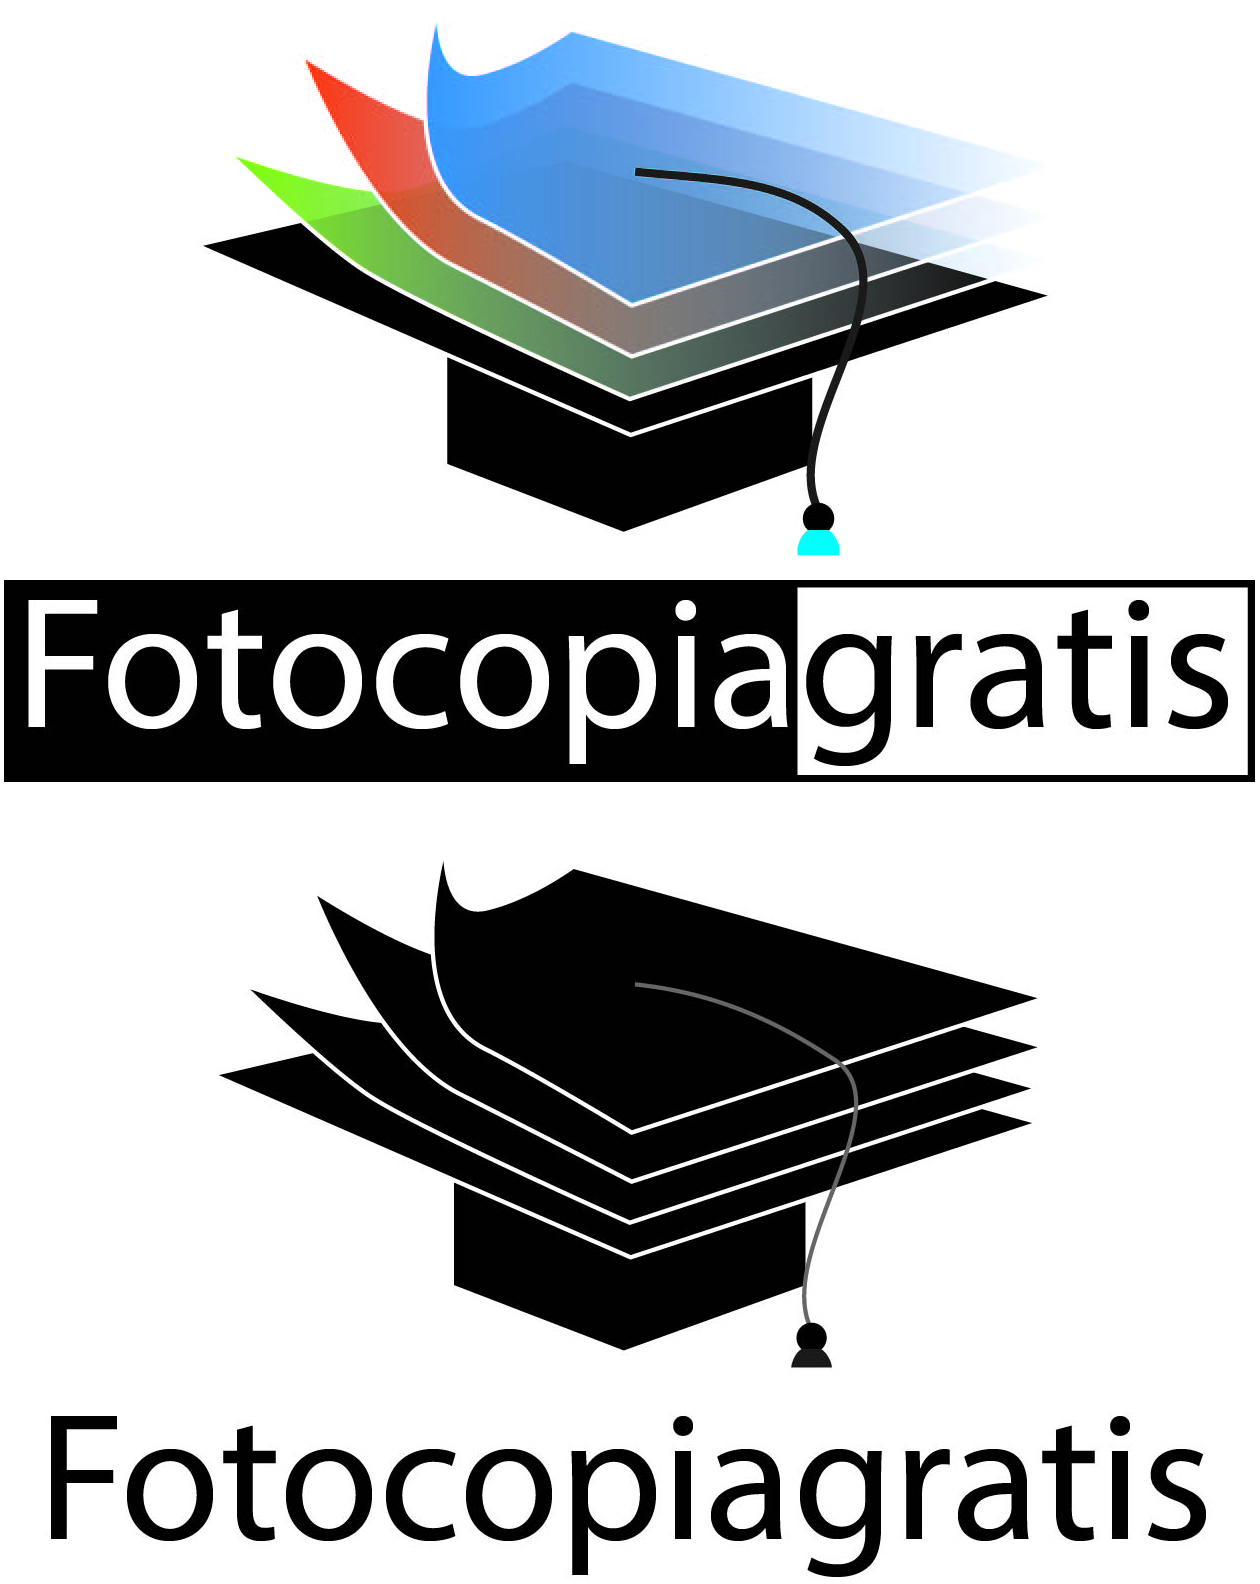 Logo Design by Ronel Billona - Entry No. 17 in the Logo Design Contest Inspiring Logo Design for Fotocopiagratis.